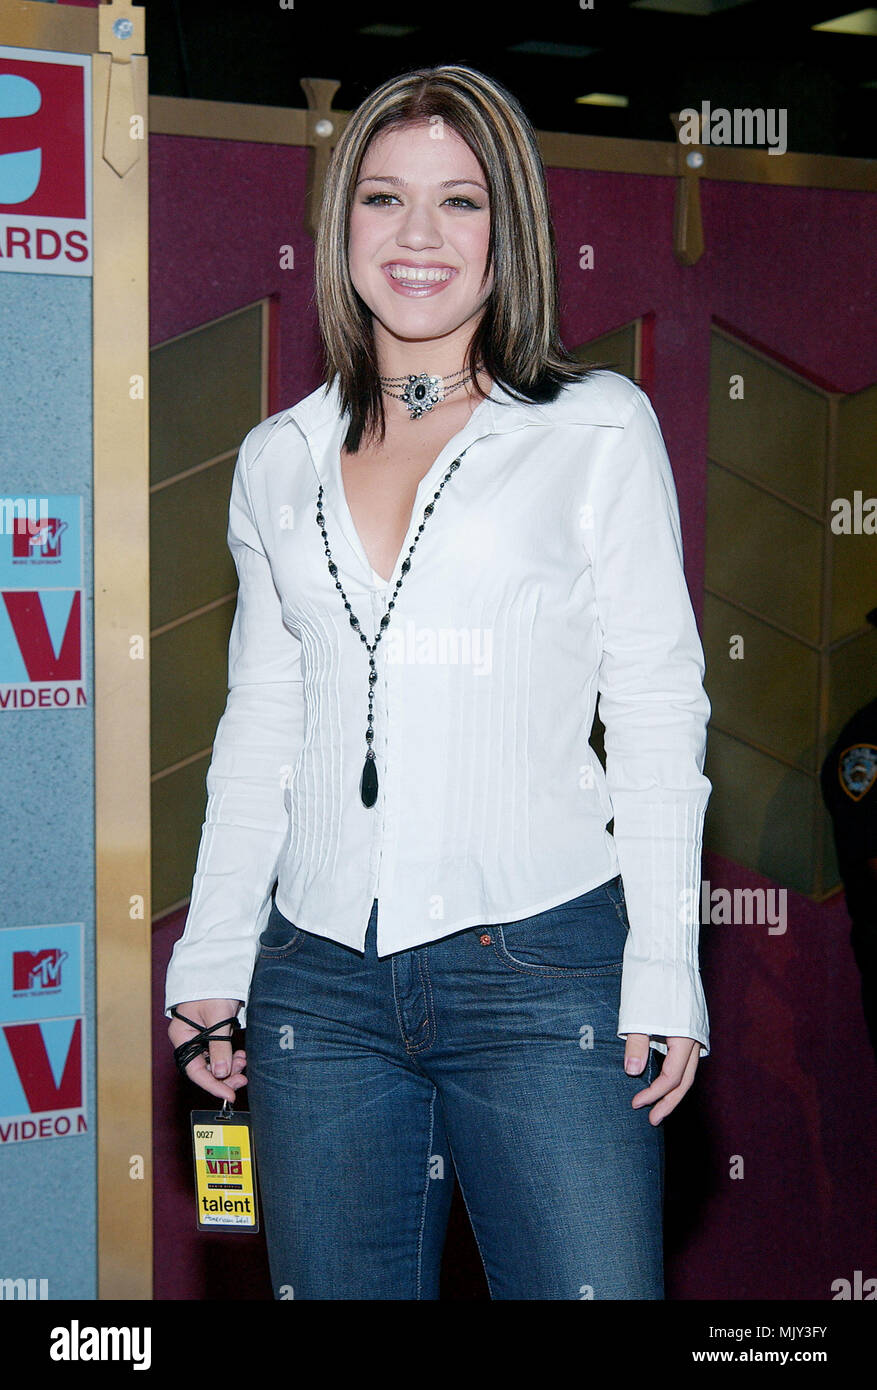 Kelly Clarkson American Idol Arriving At The 2002 Mtv Video Music Awards At The Radio City Music Hall In New York August 29 2002 Clarksonkelly Americanidol5 Jpgclarksonkelly Americanidol5 Event In Hollywood Life